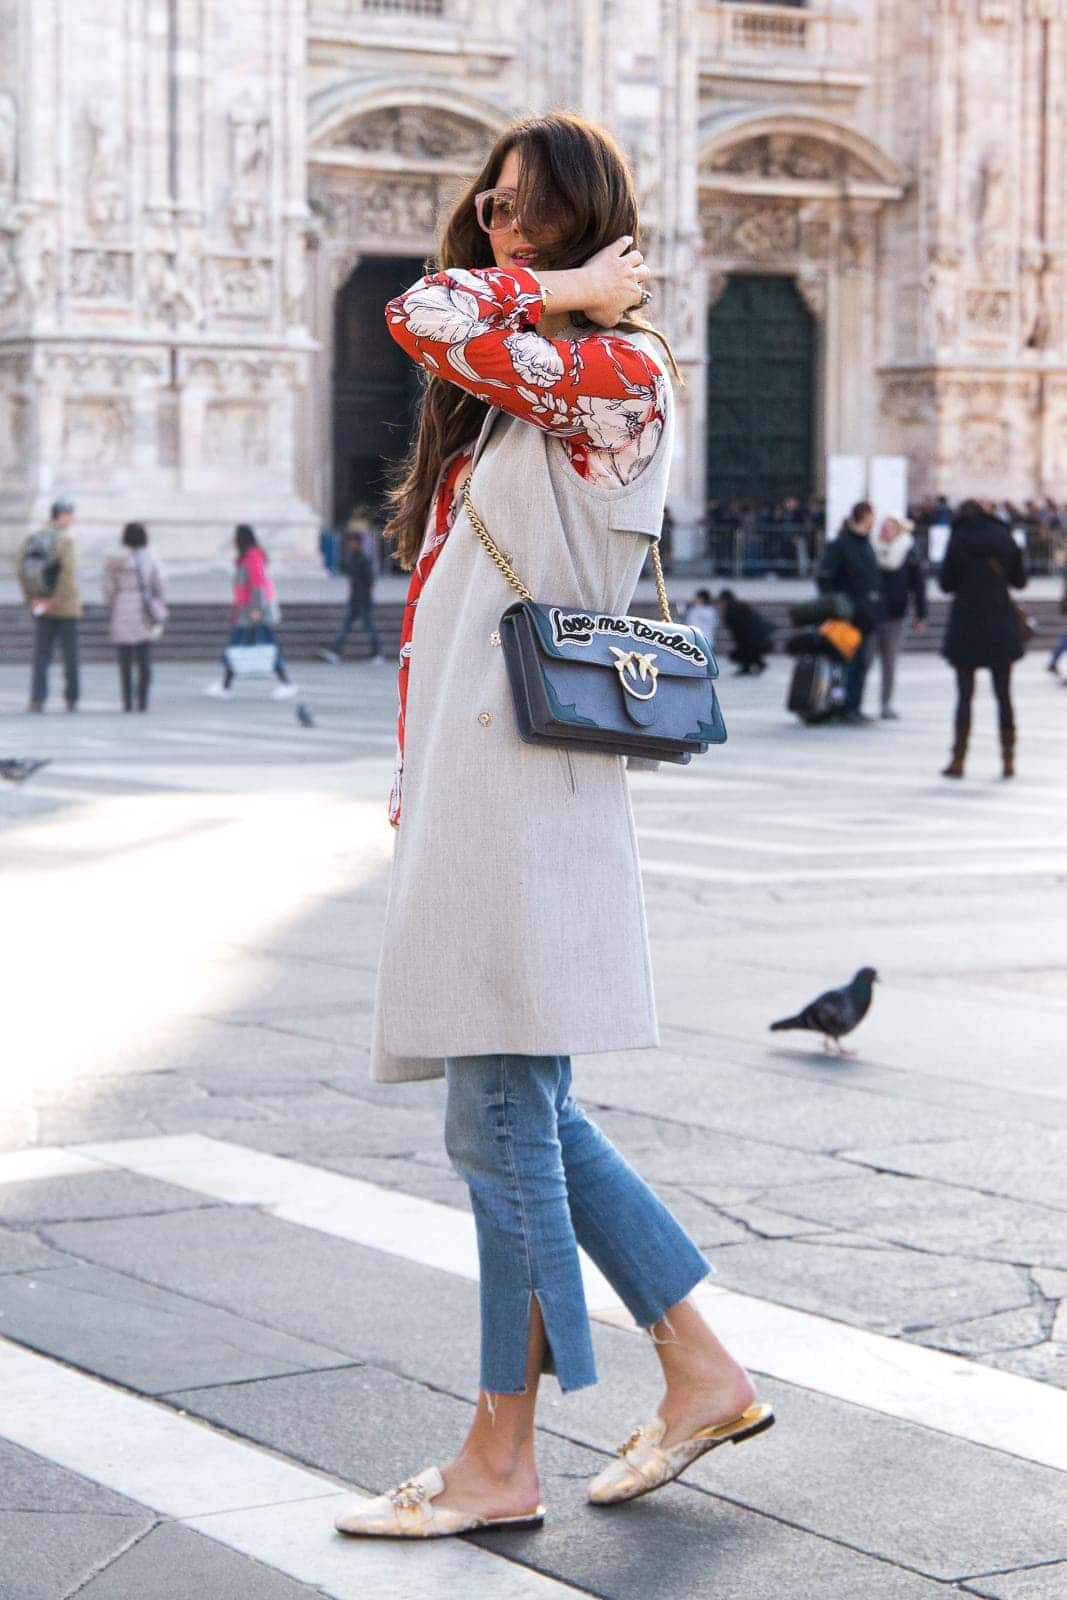 Milano Duomo – Cropped Jeans & Dolce & Gabbana Slippers